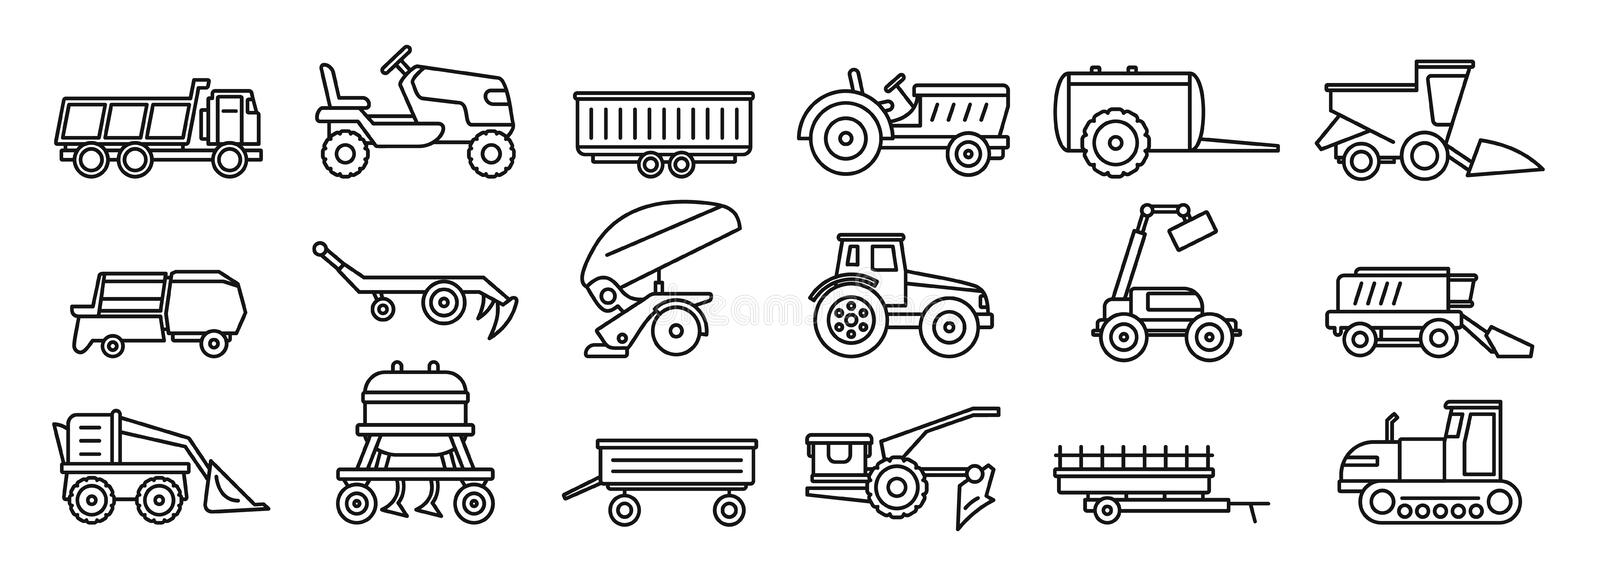 Agricultural machines equipment icons set, outline style royalty free illustration